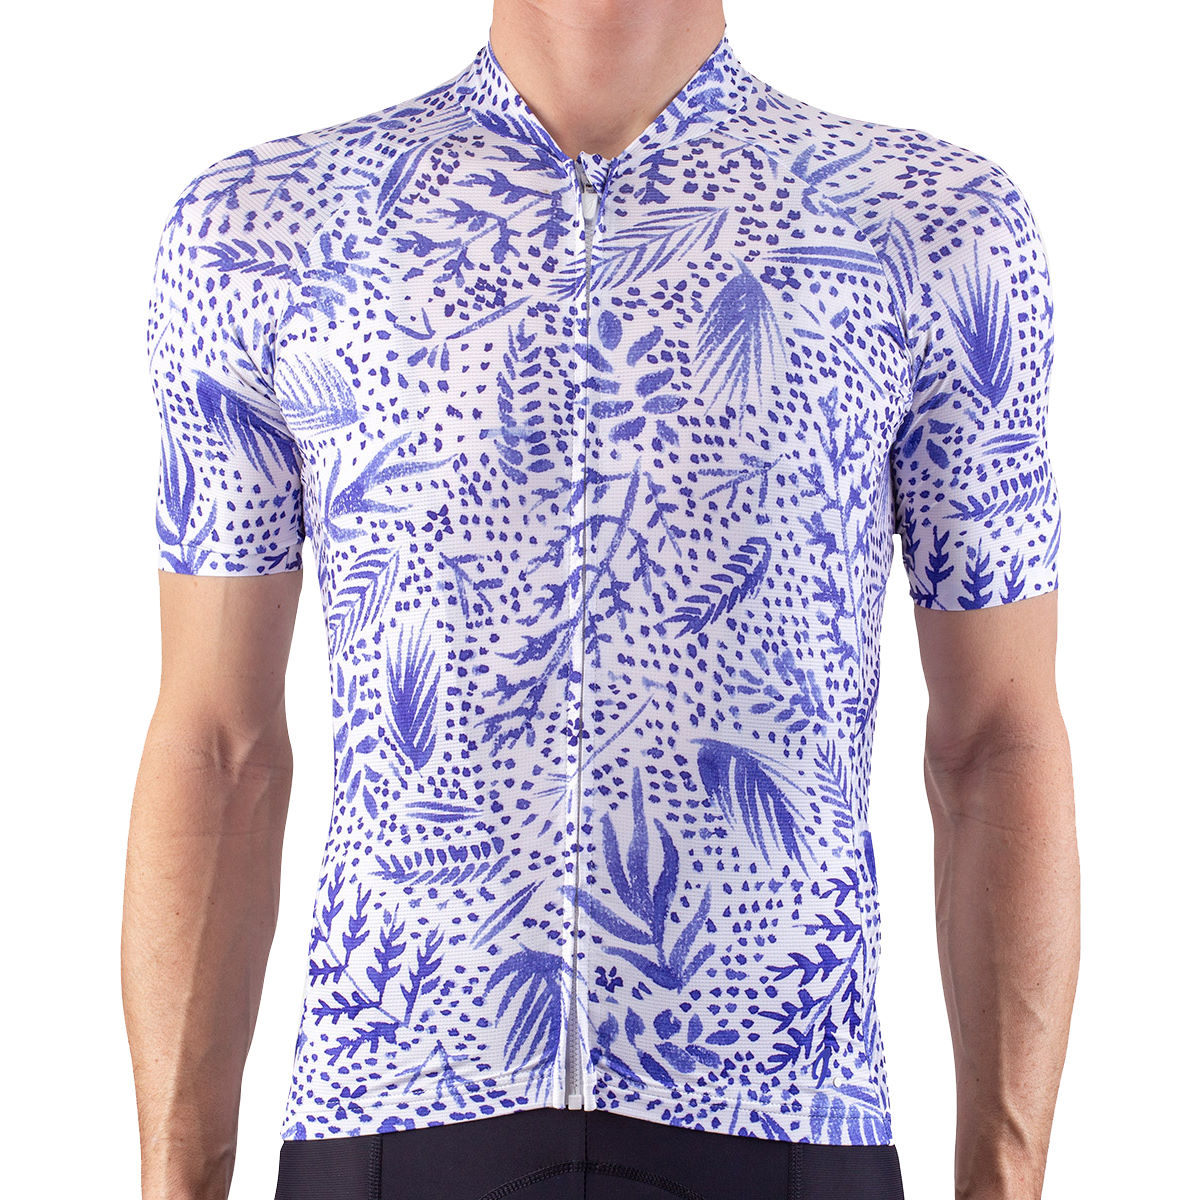 Isadore Alternative Cycling Jersey Blueprint - 2xl Blue/white